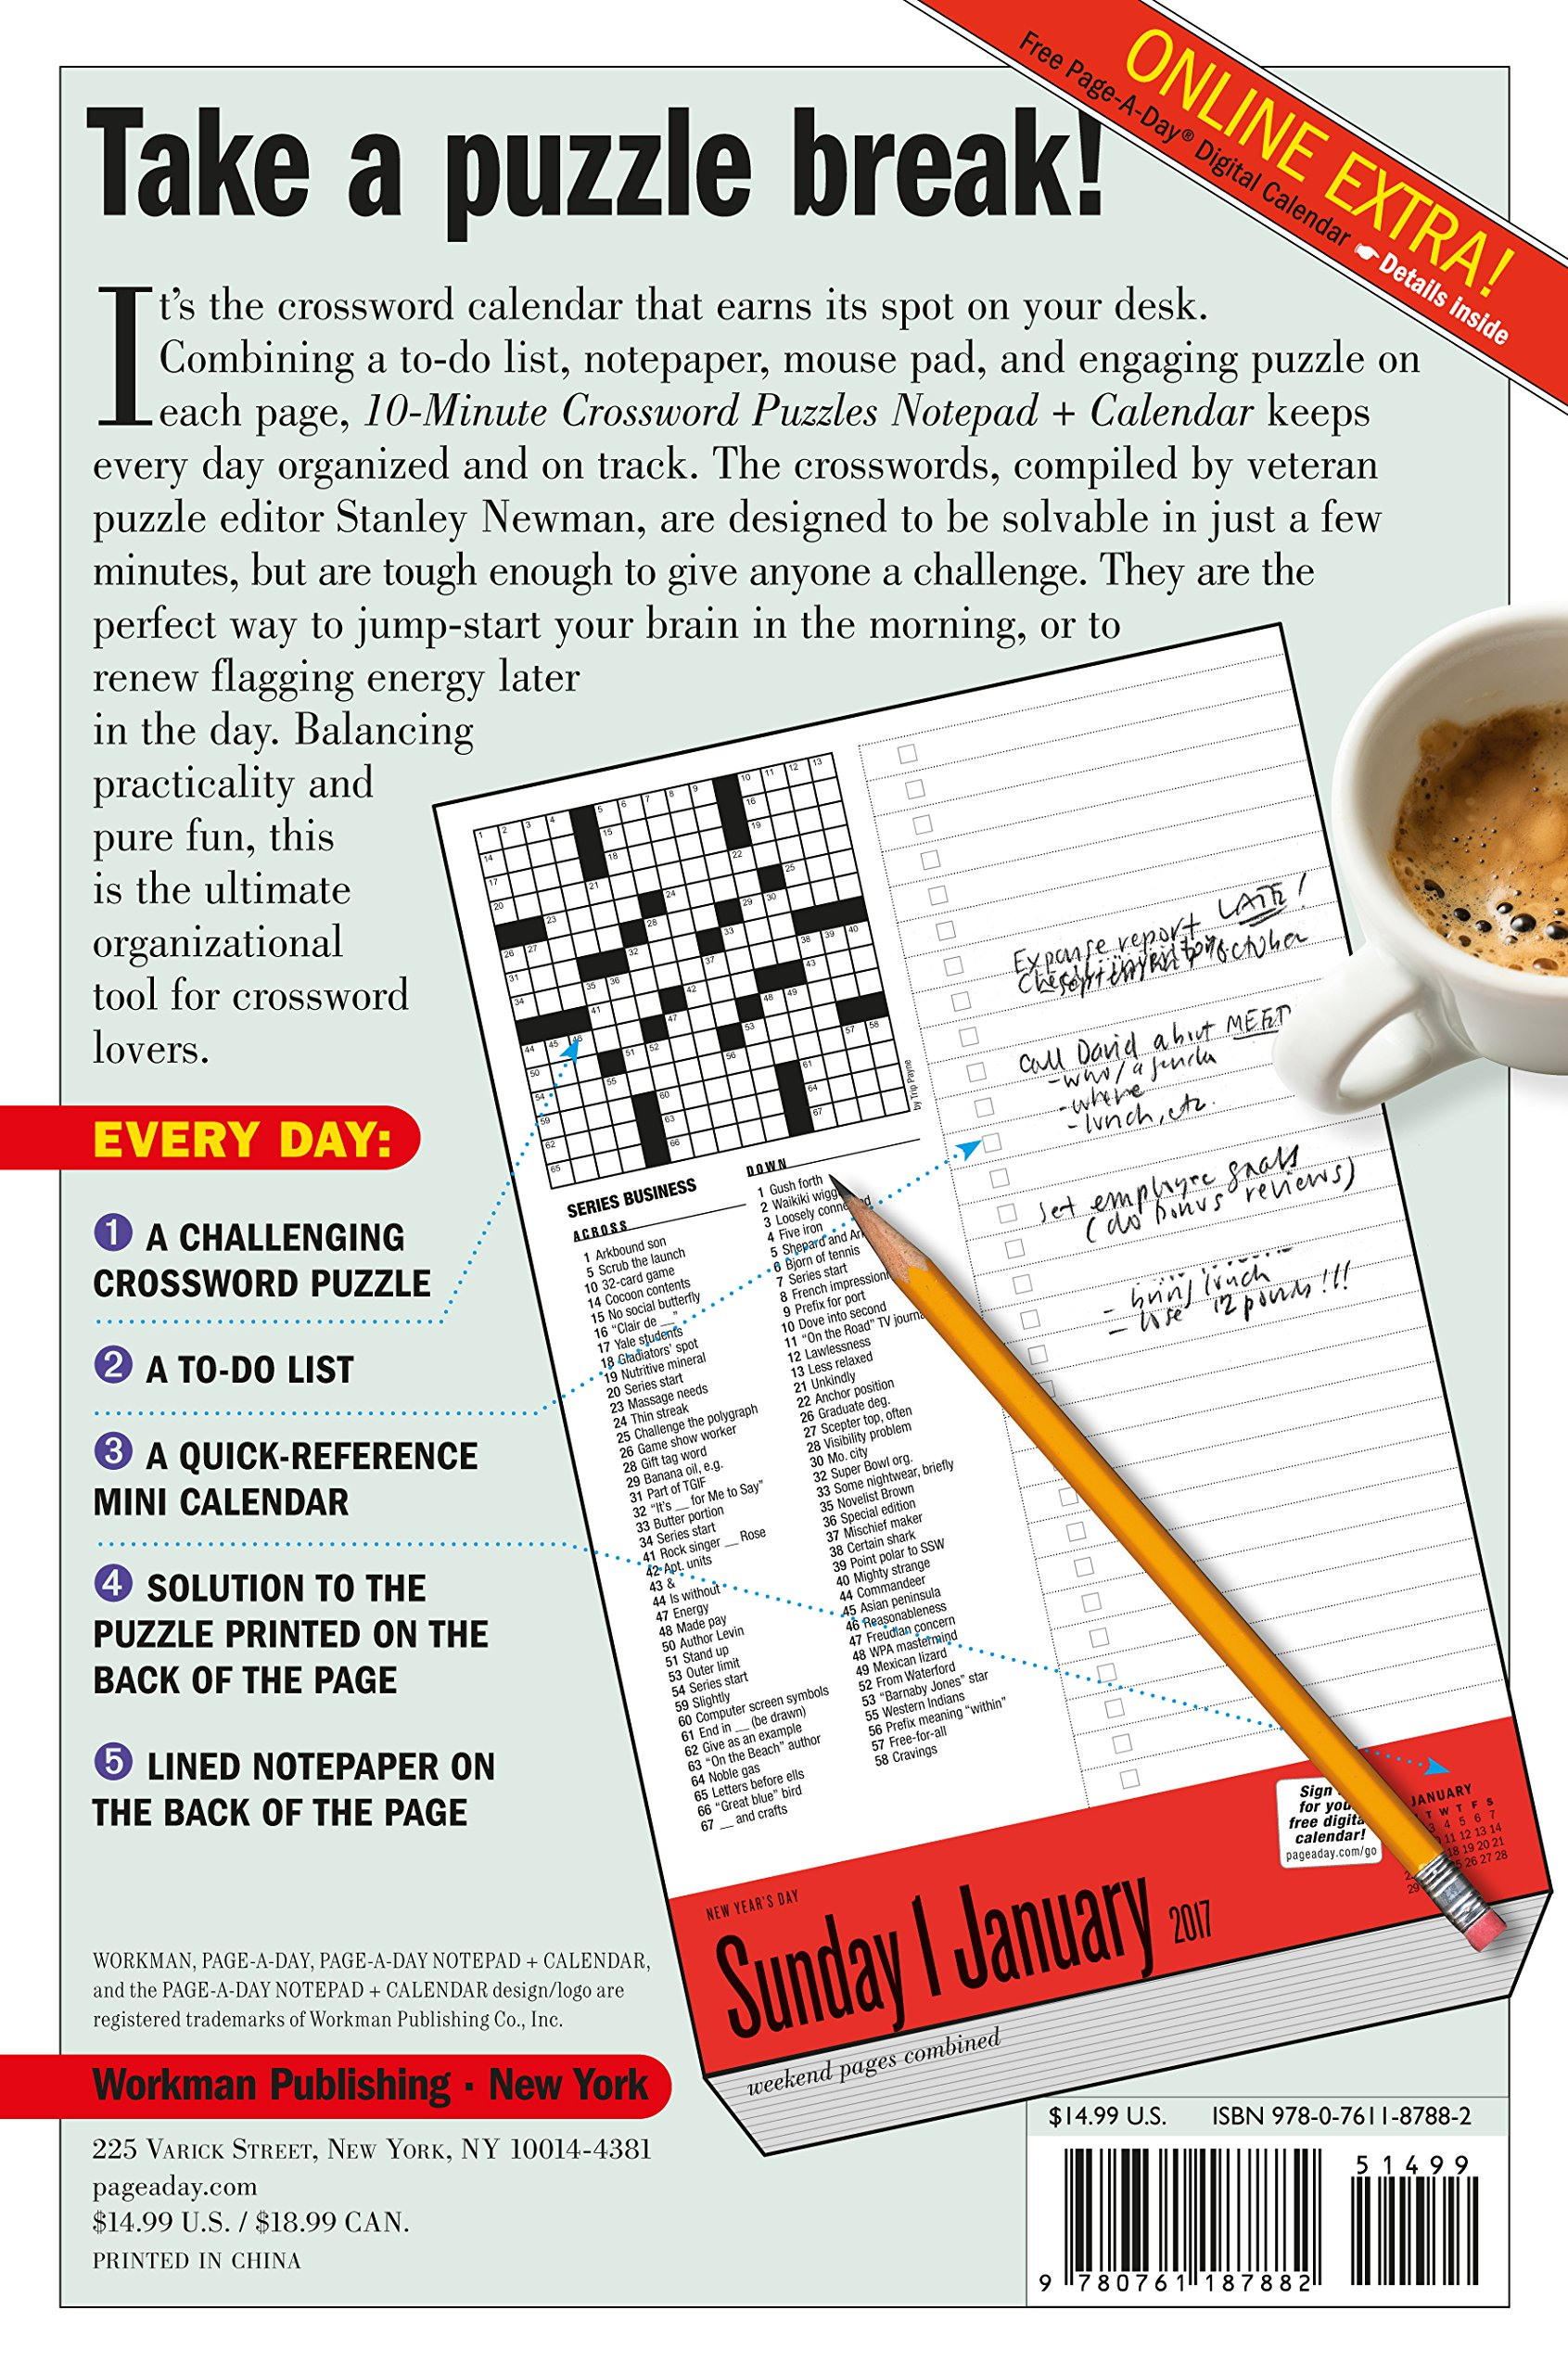 10 minute crossword puzzles notepad calendar 2017 stanley 10 minute crossword puzzles notepad calendar 2017 stanley newman 9780761187882 amazon books biocorpaavc